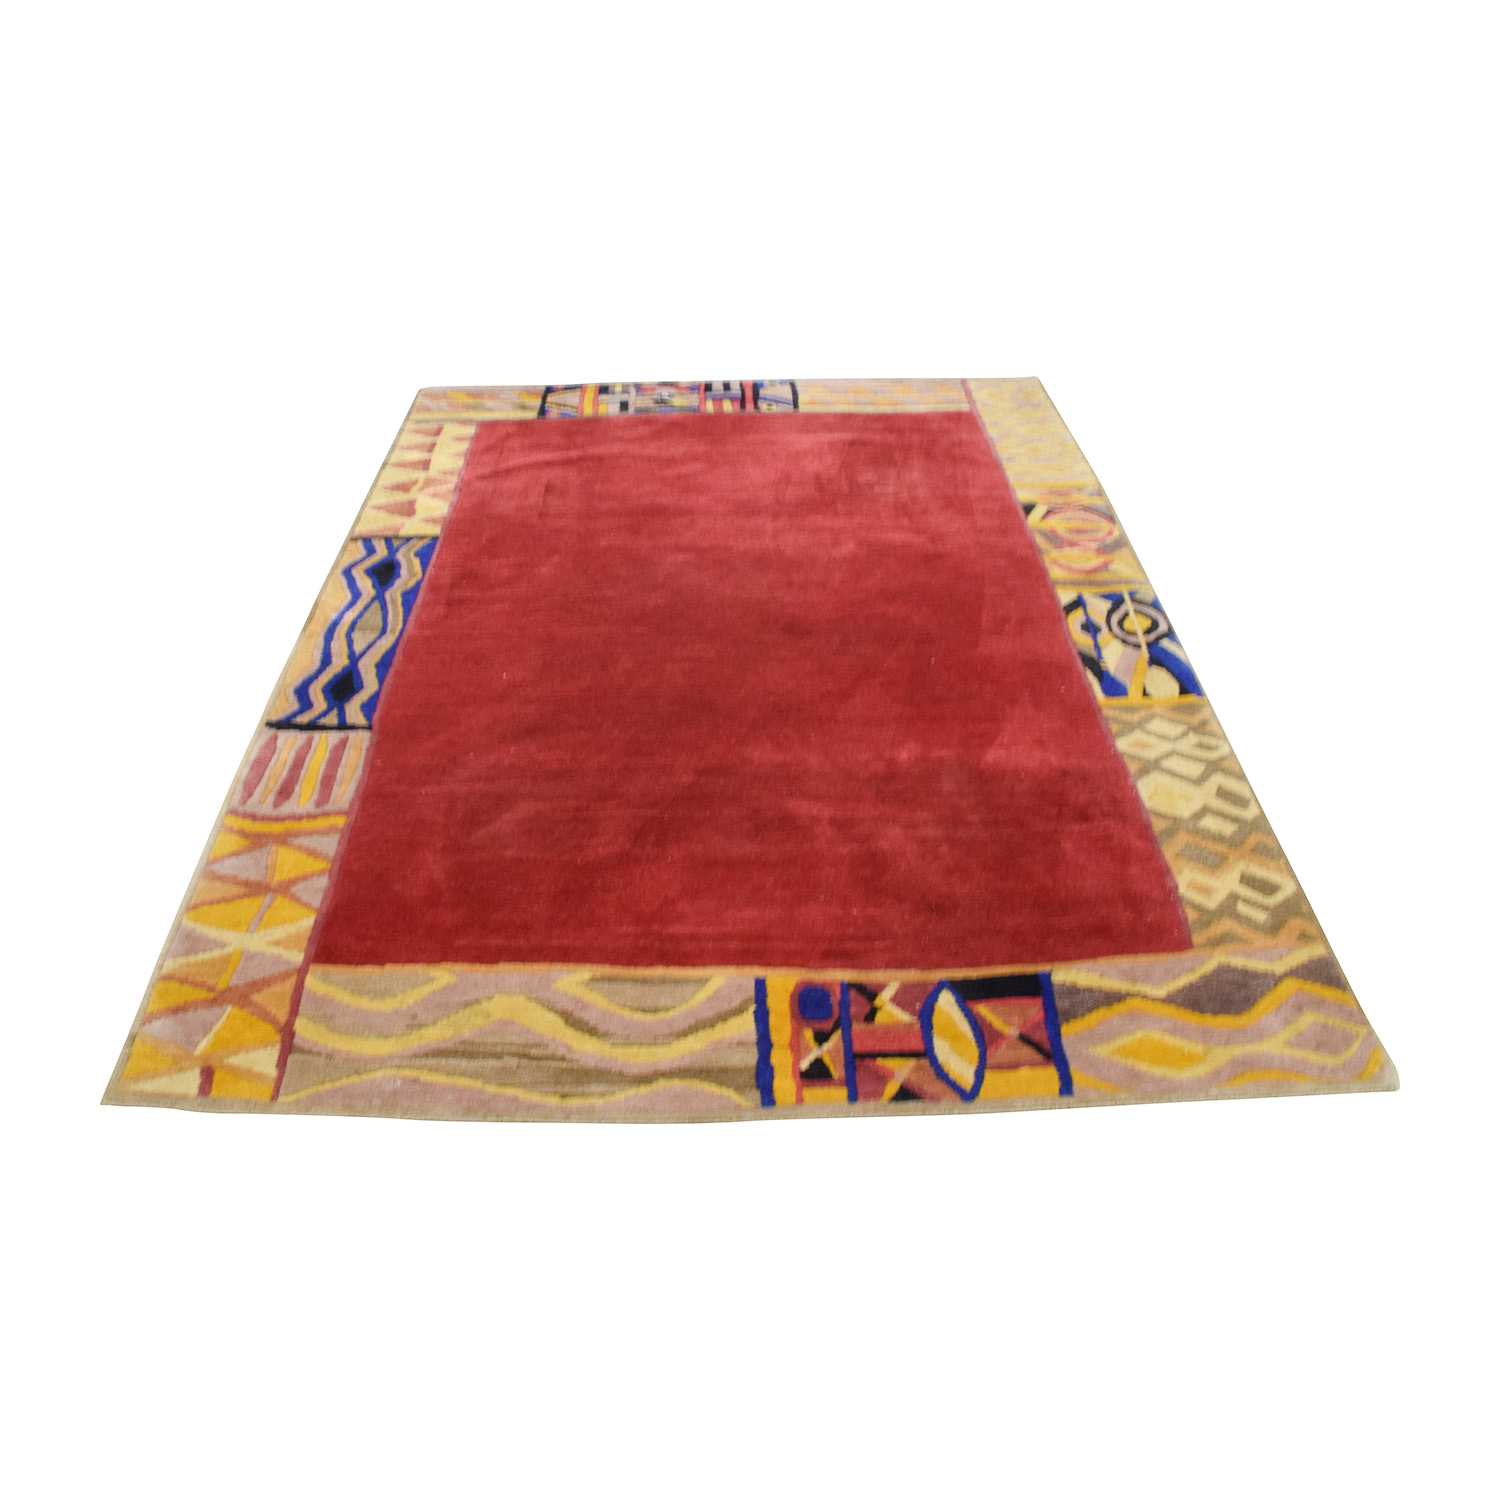 ABC Carpet And Home ABC Carpet & Home Moroccan